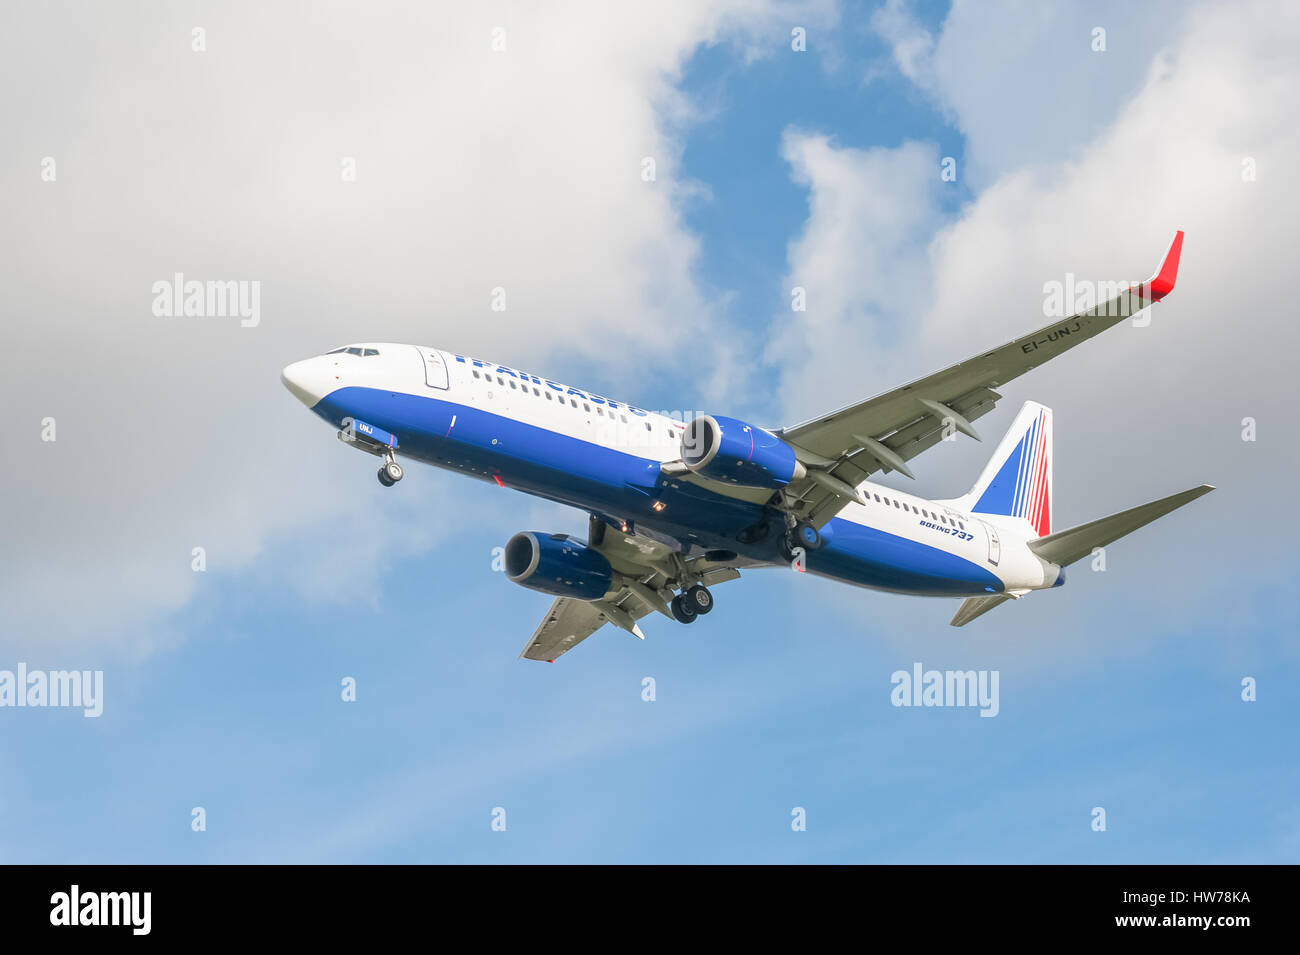 Operated by Russian Federation airline Transaero, a Boeing 737 on landing approach to London Heathrow Airport Stock Photo